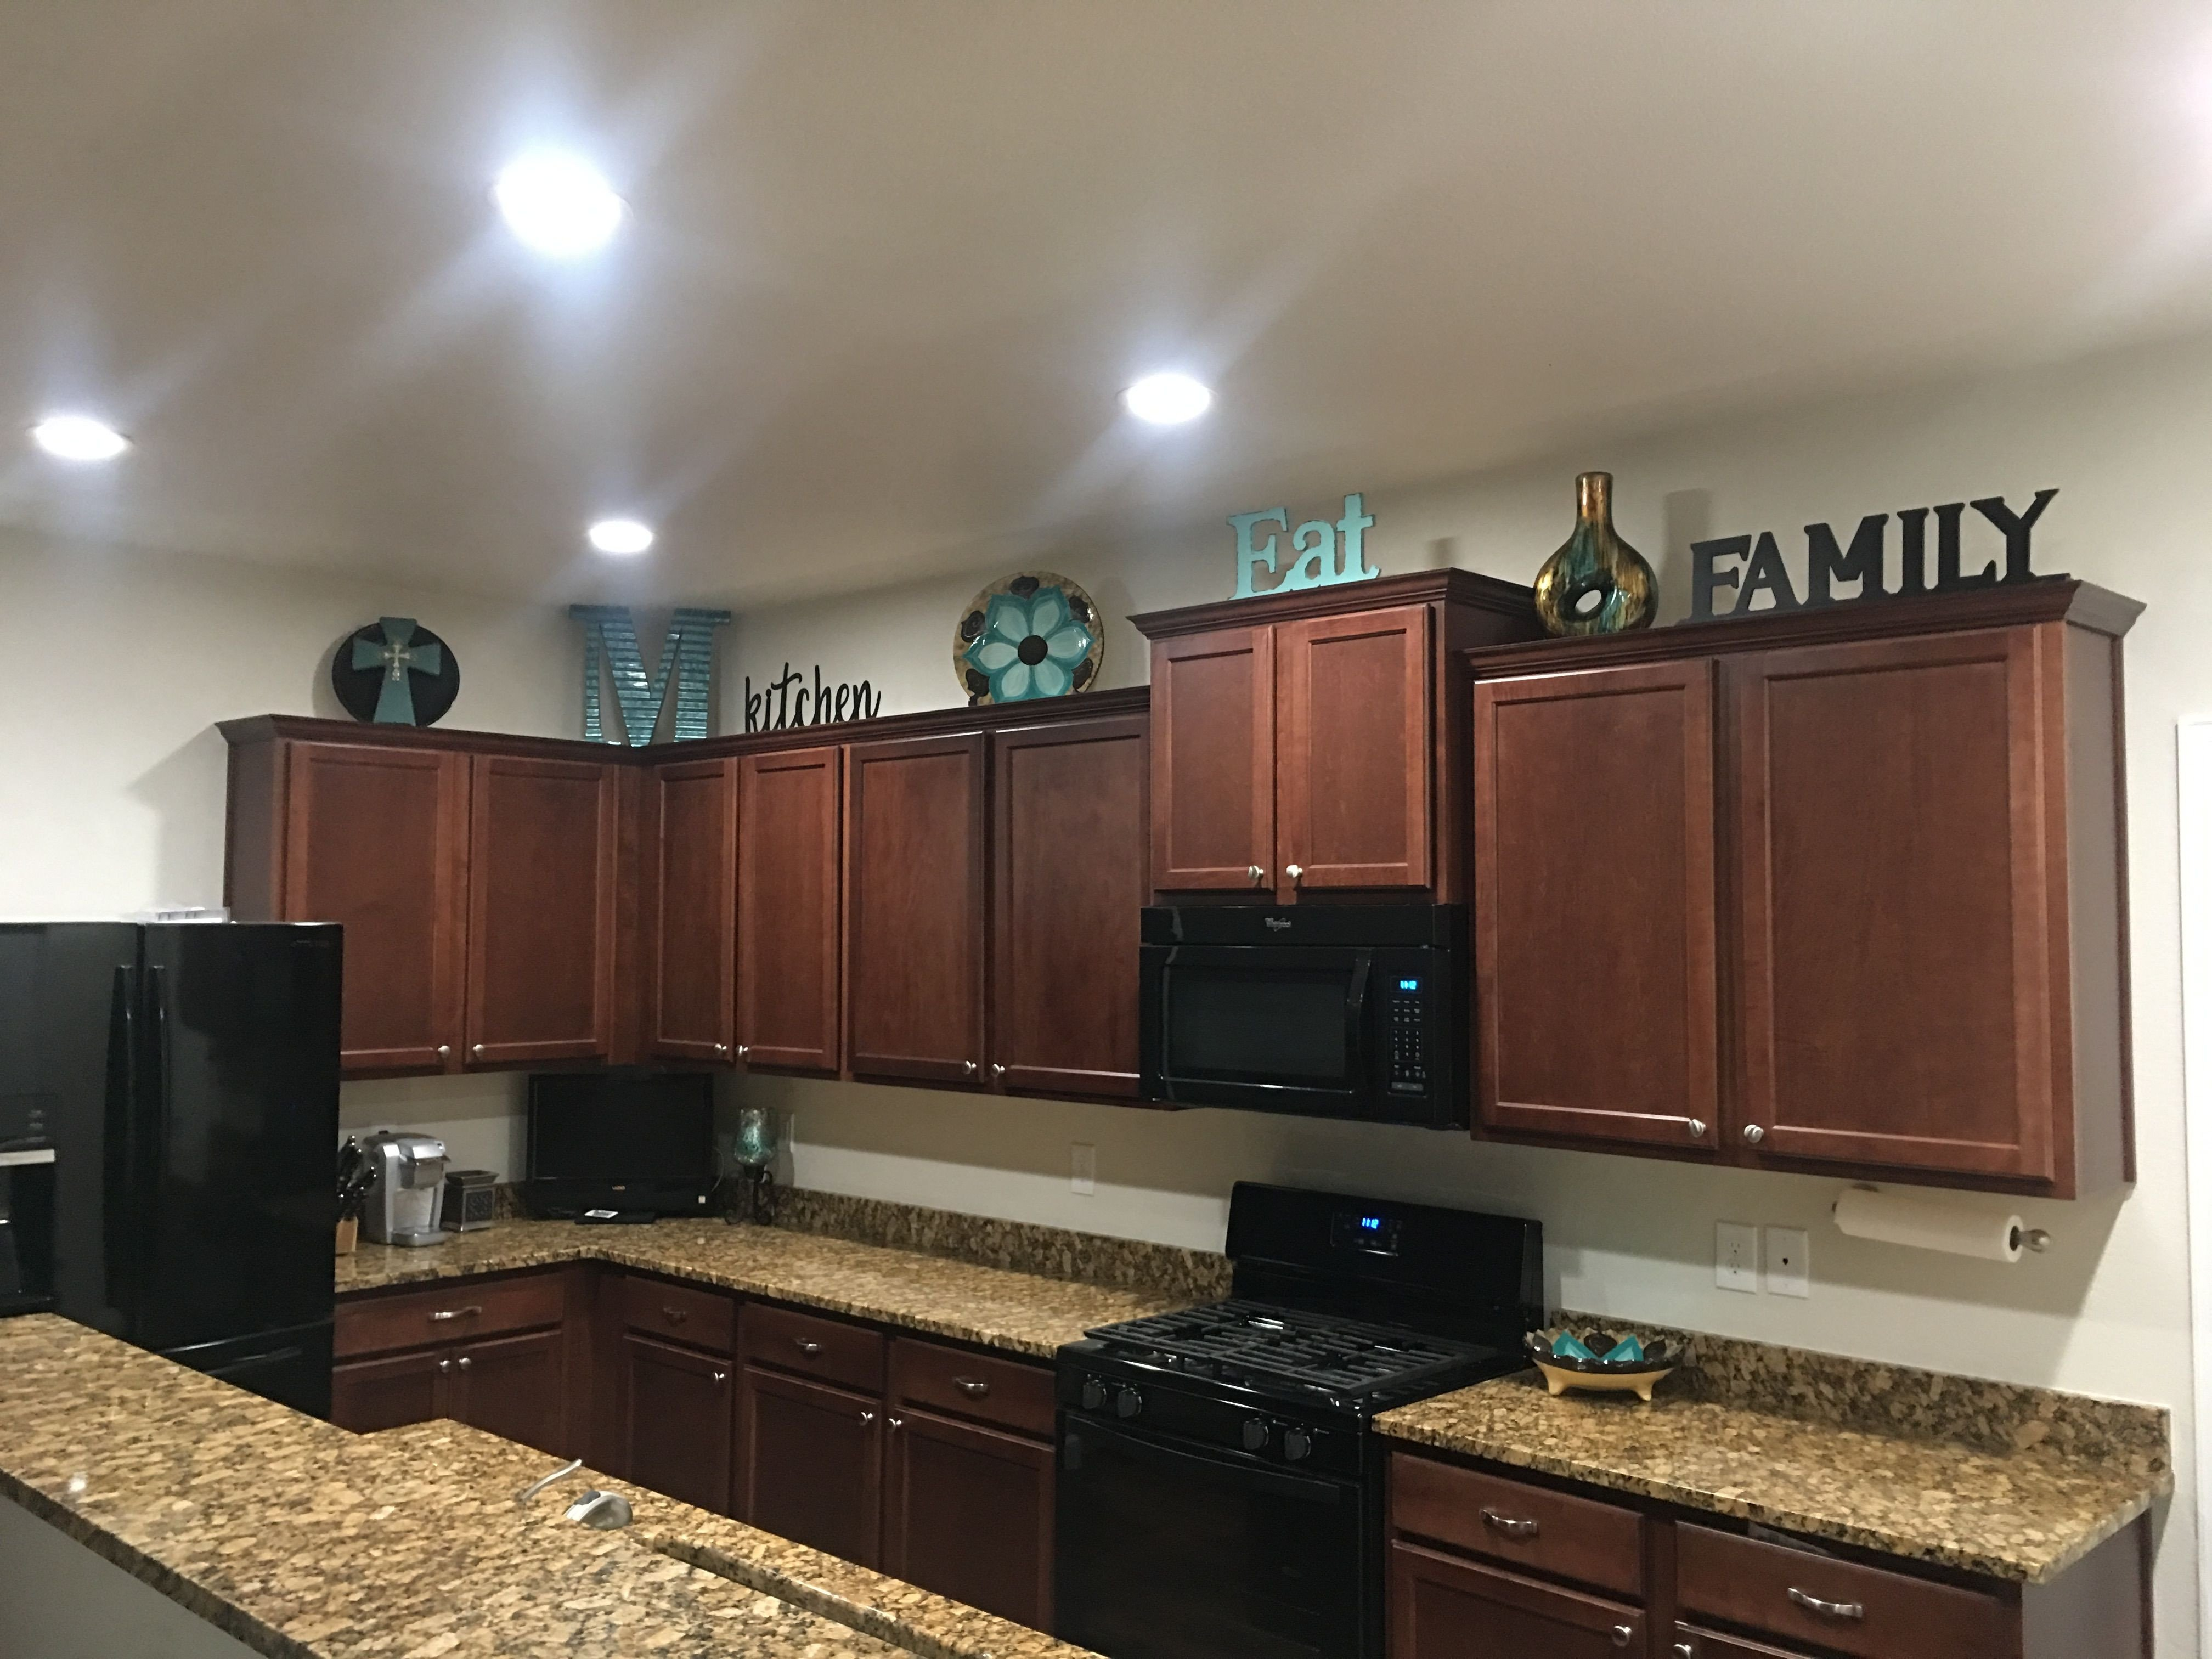 Kitchen Decor for Above Cabinets Luxury Cabinet Decor New Home Ideas In 2019